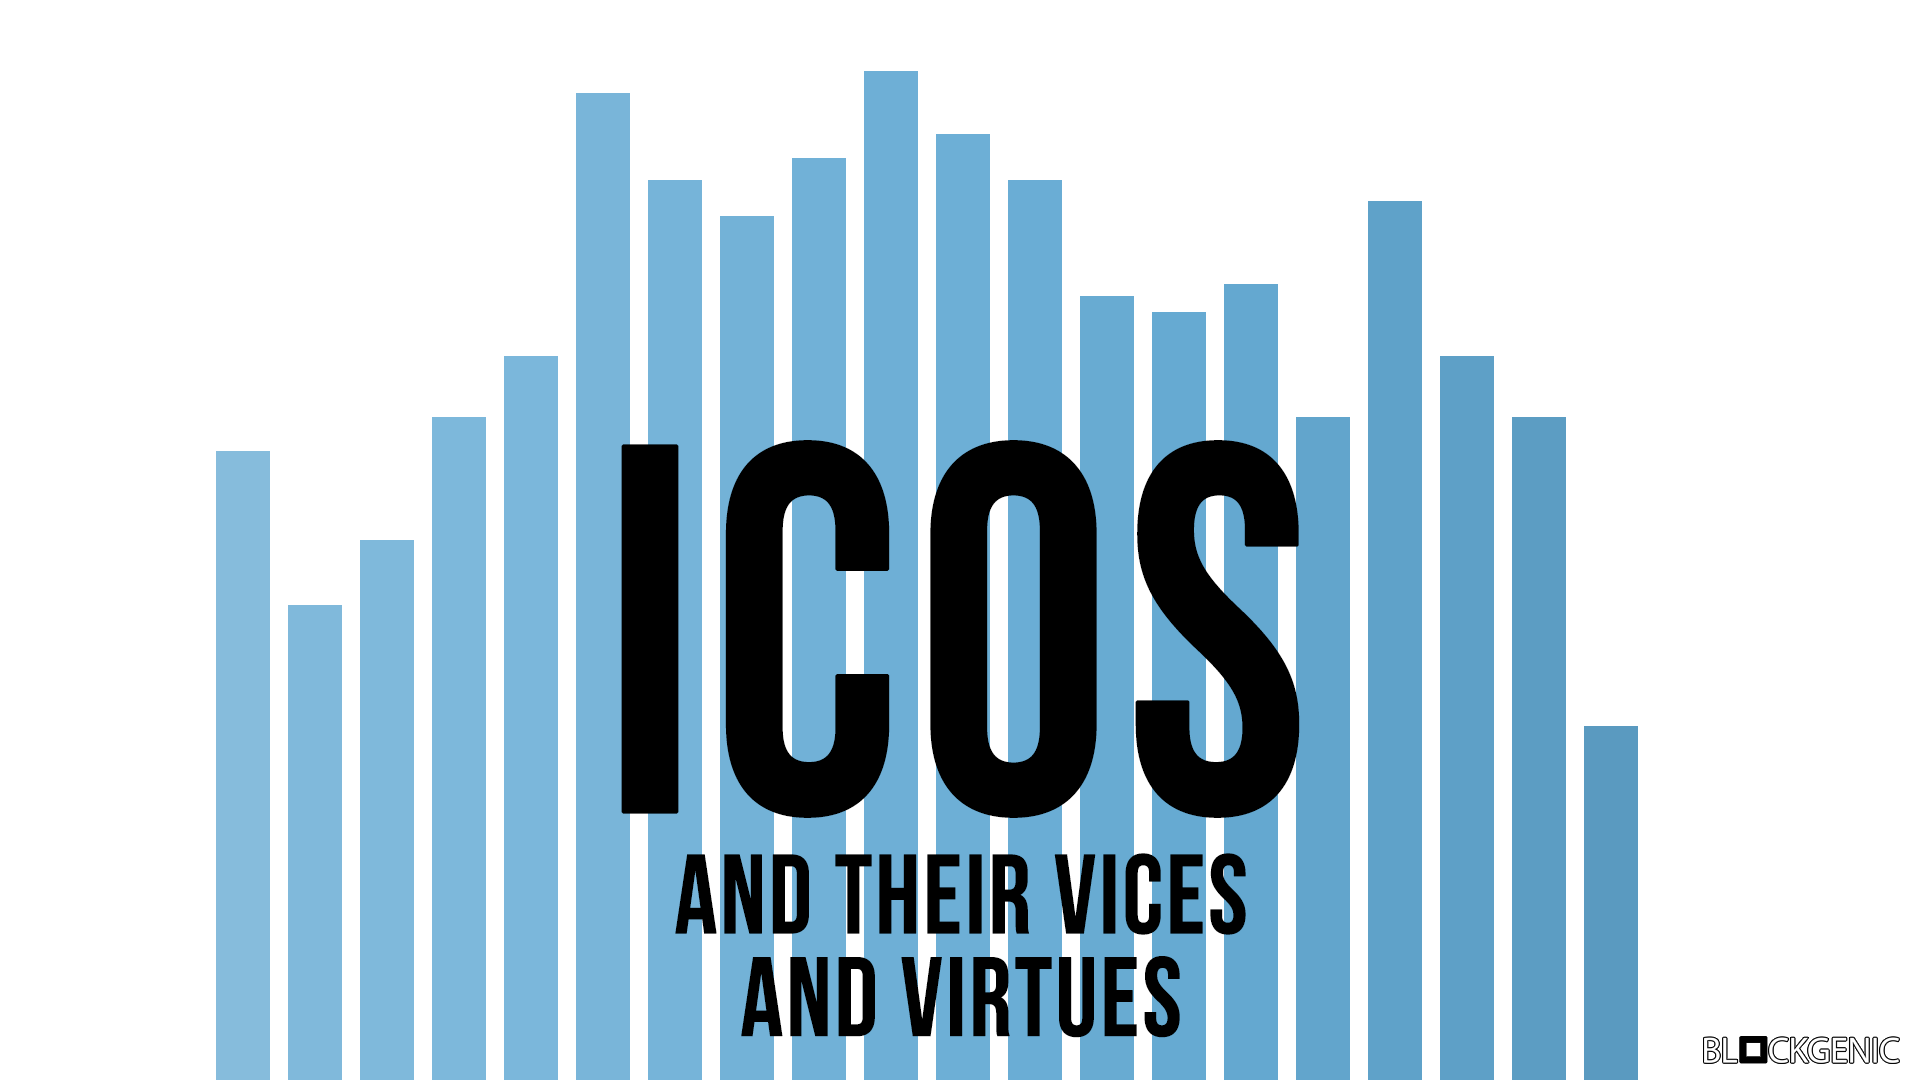 The Vices And Virtues Of ICOs